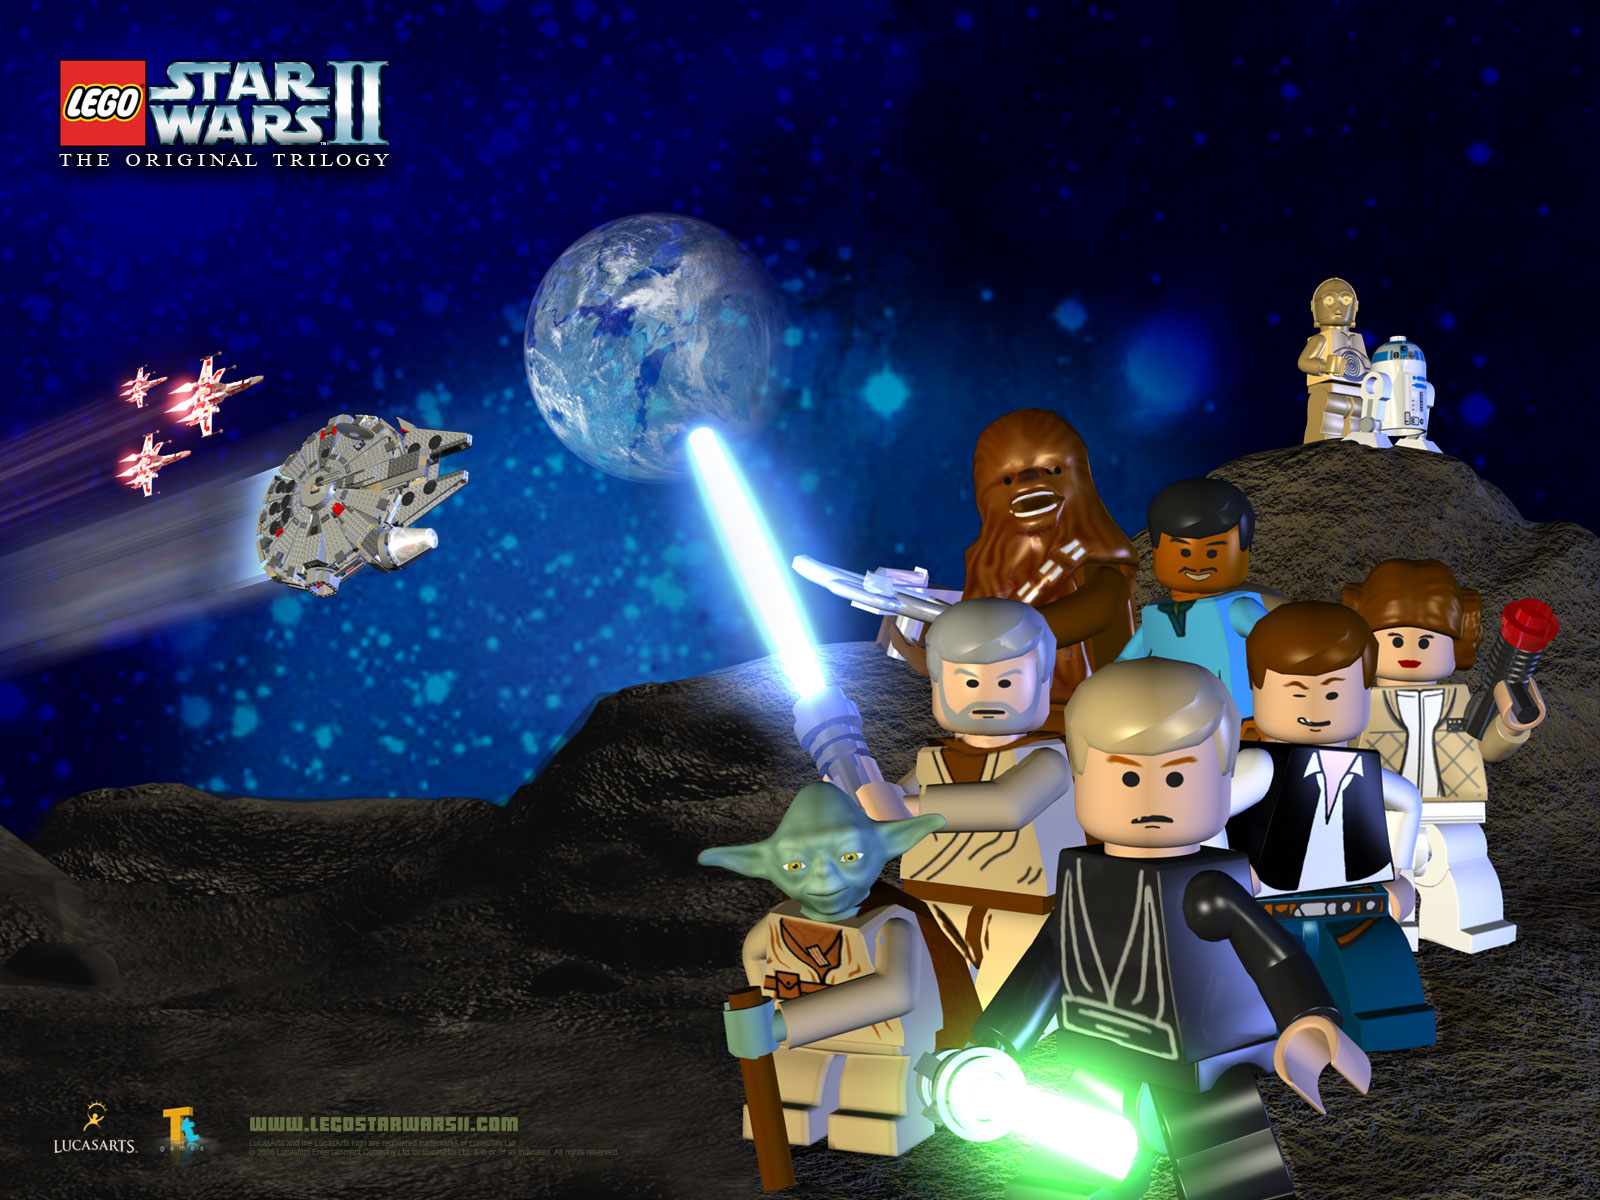 31 Lego Star Wars Iii The Clone Wars Wallpapers On